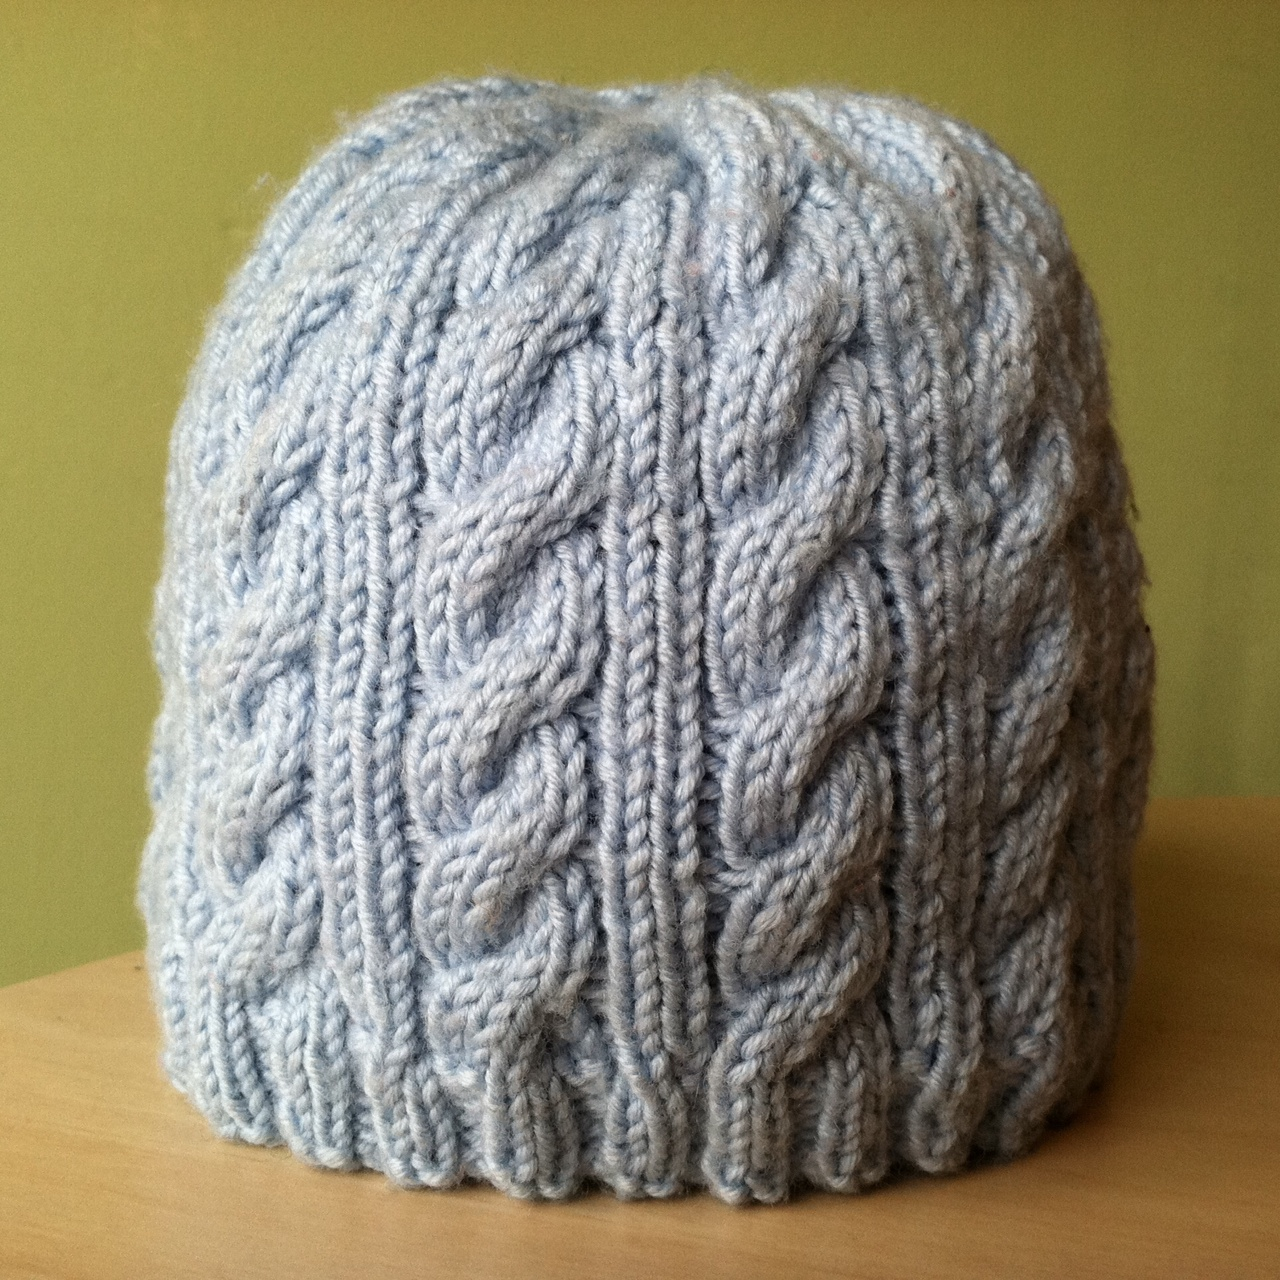 Knitting Patterns Baby Cable Hats : The Yarn Garden Blog: Upcoming Class: Easy Baby Cable Knit Hat